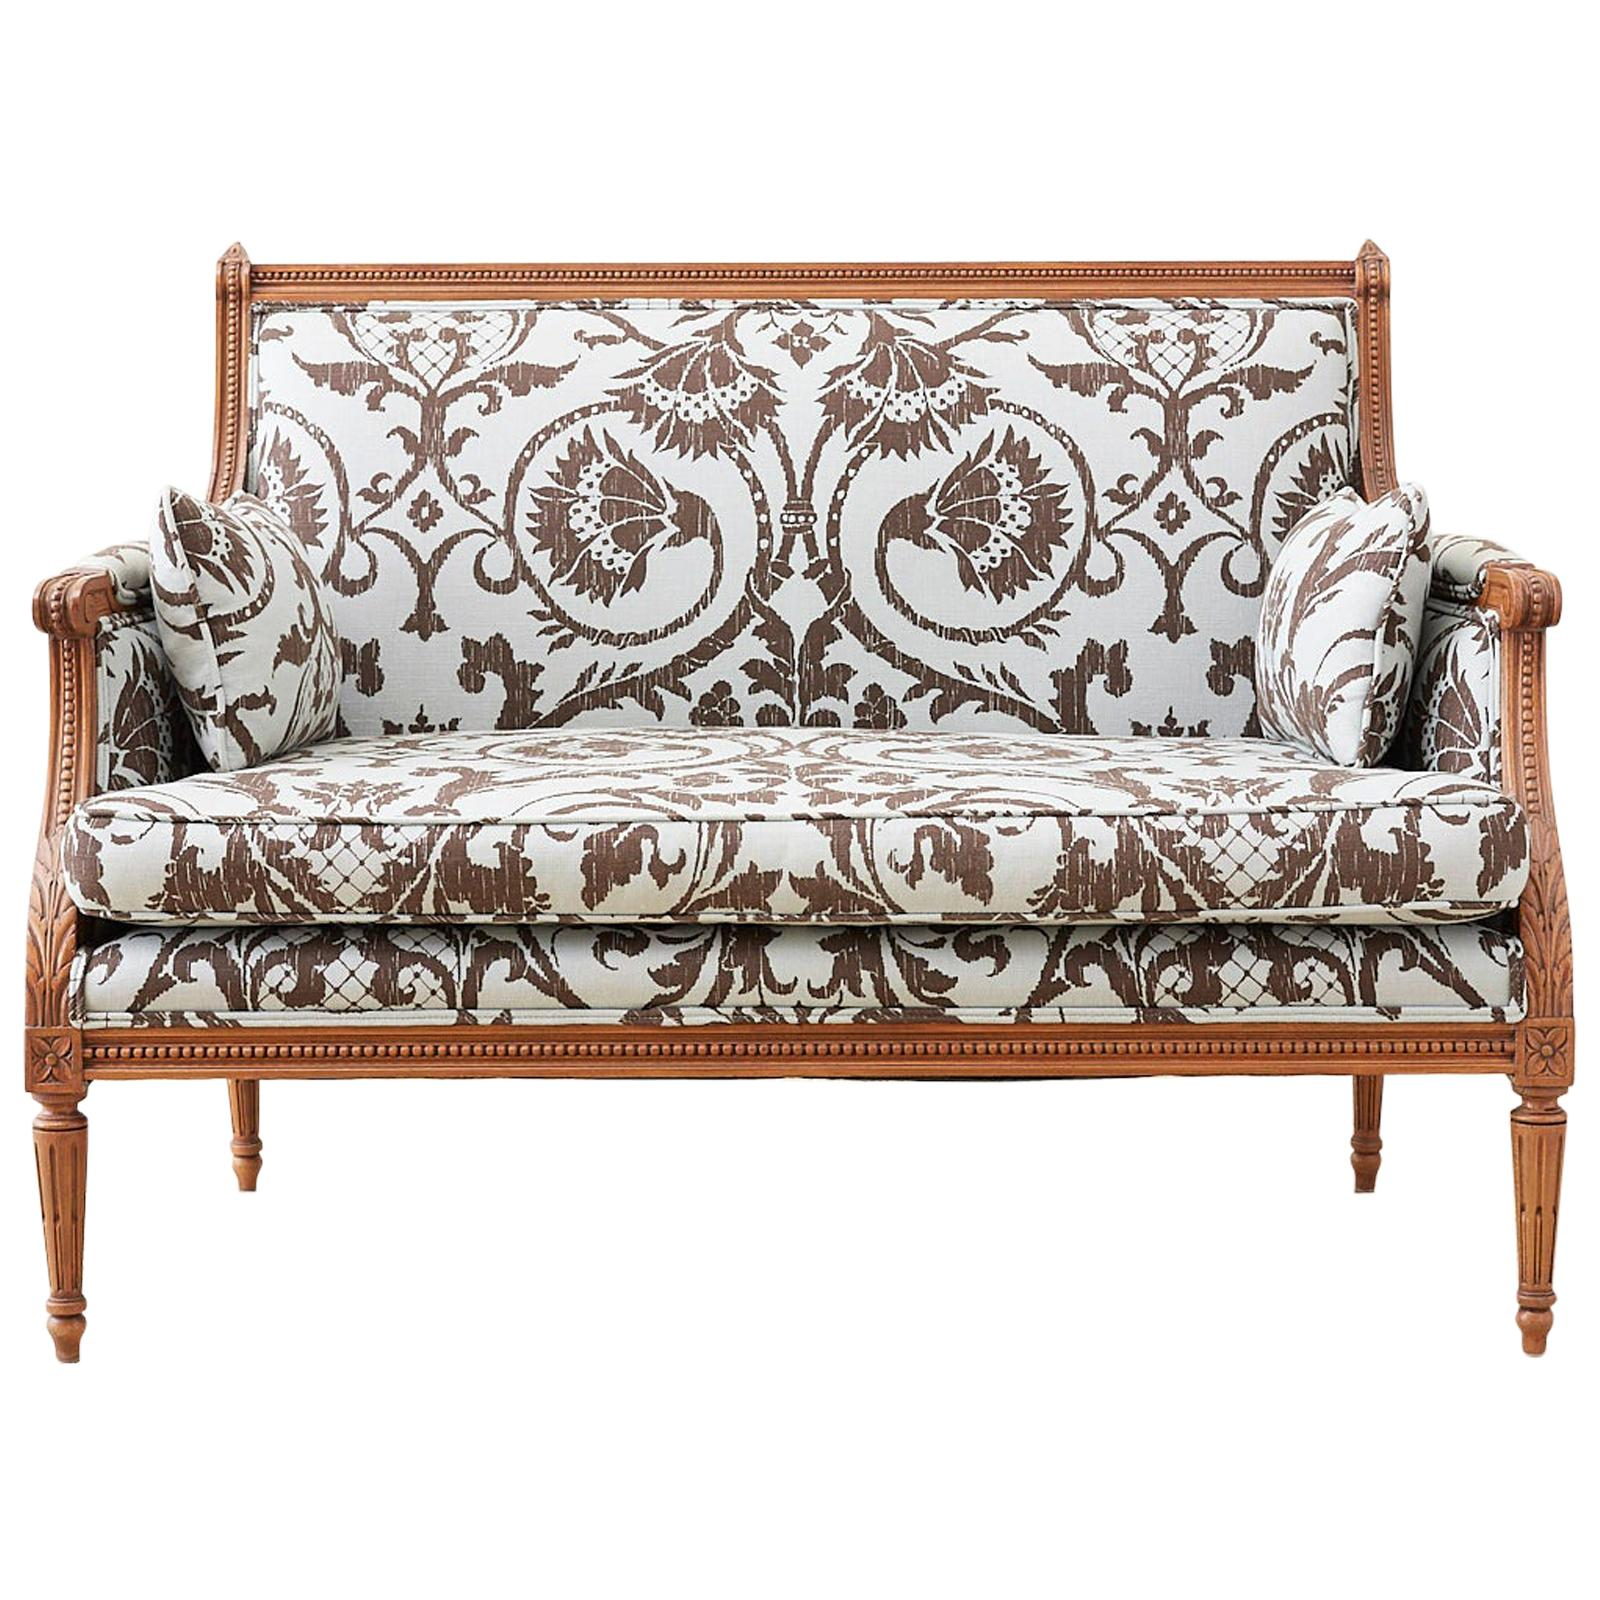 Louis XVI Style Linen Upholstered Settee or Canape